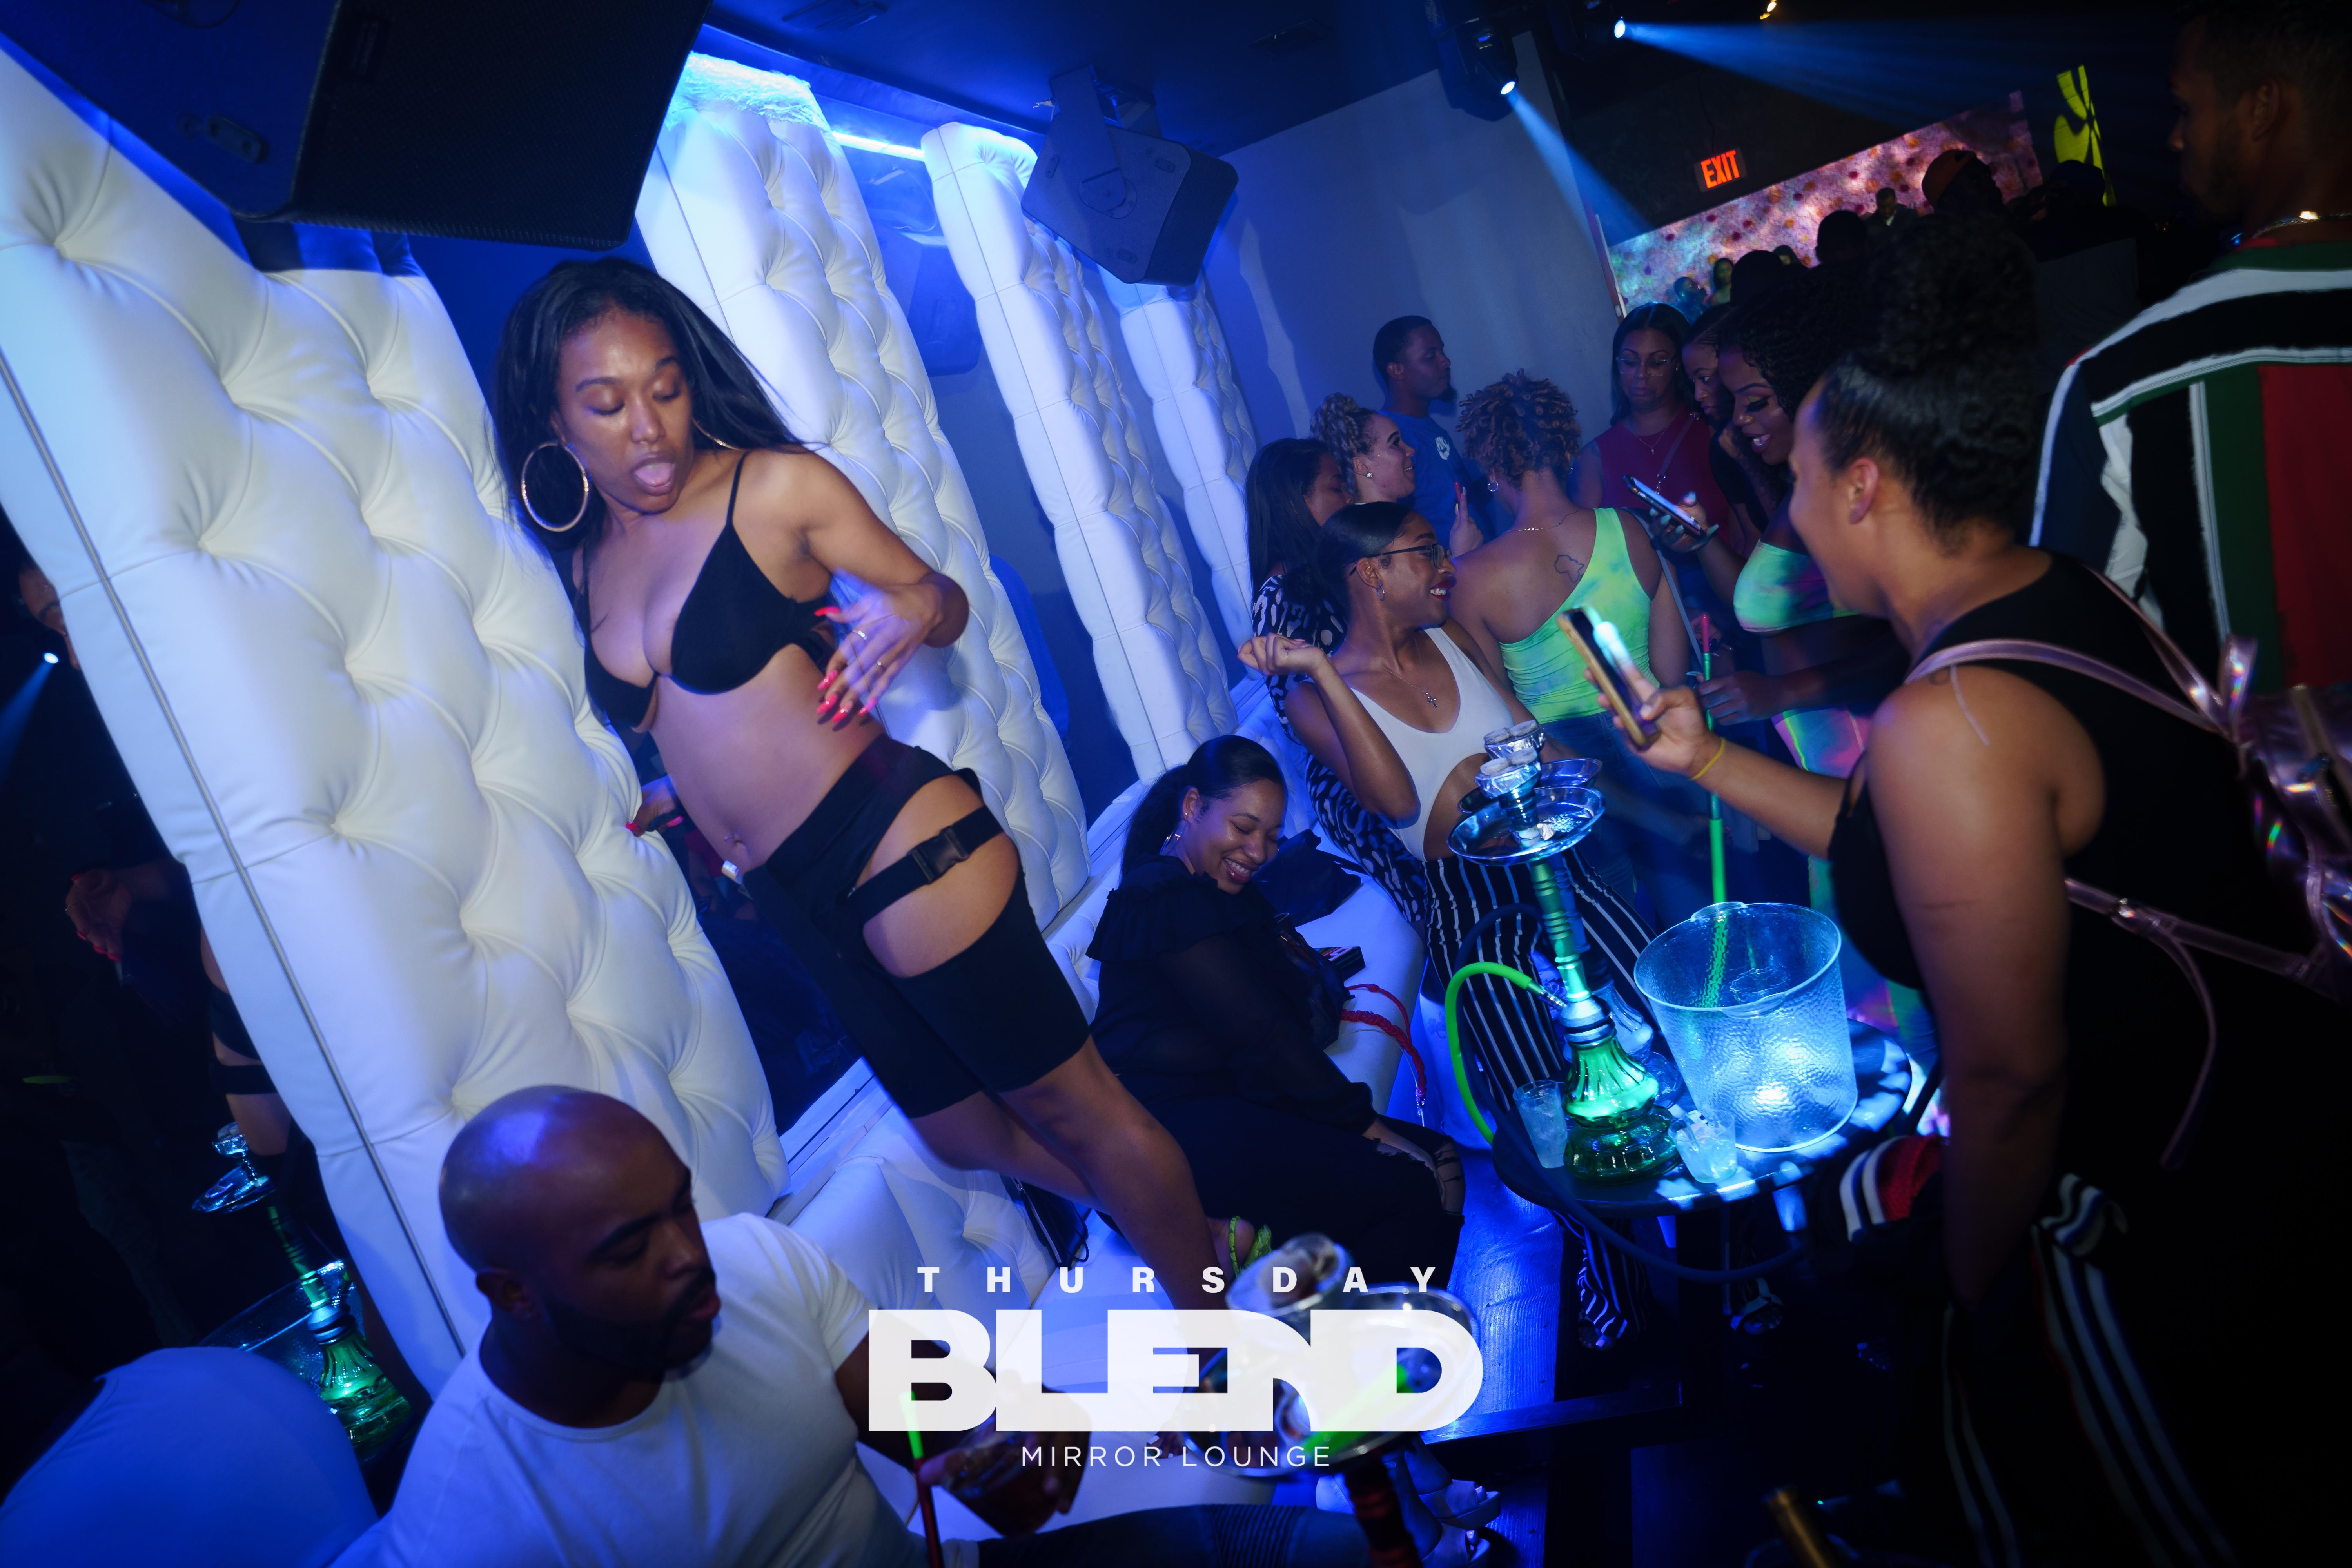 DC's Best Thursday Night Vibe! Thursday Blend at Mirror Lounge: 10PM-2AM